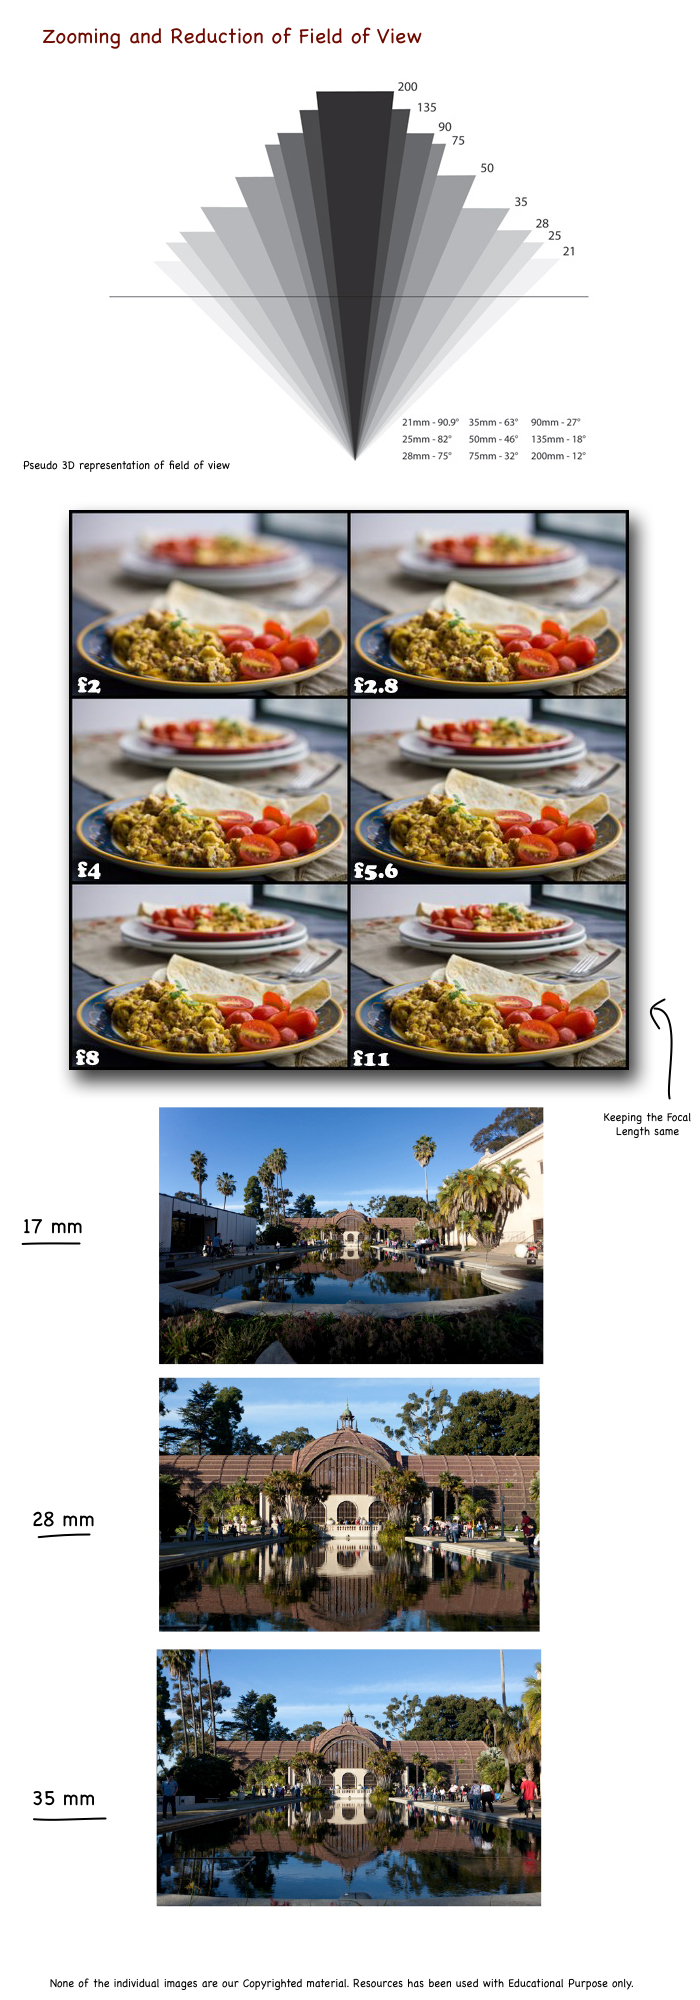 Zooming and Reduction of Field of View